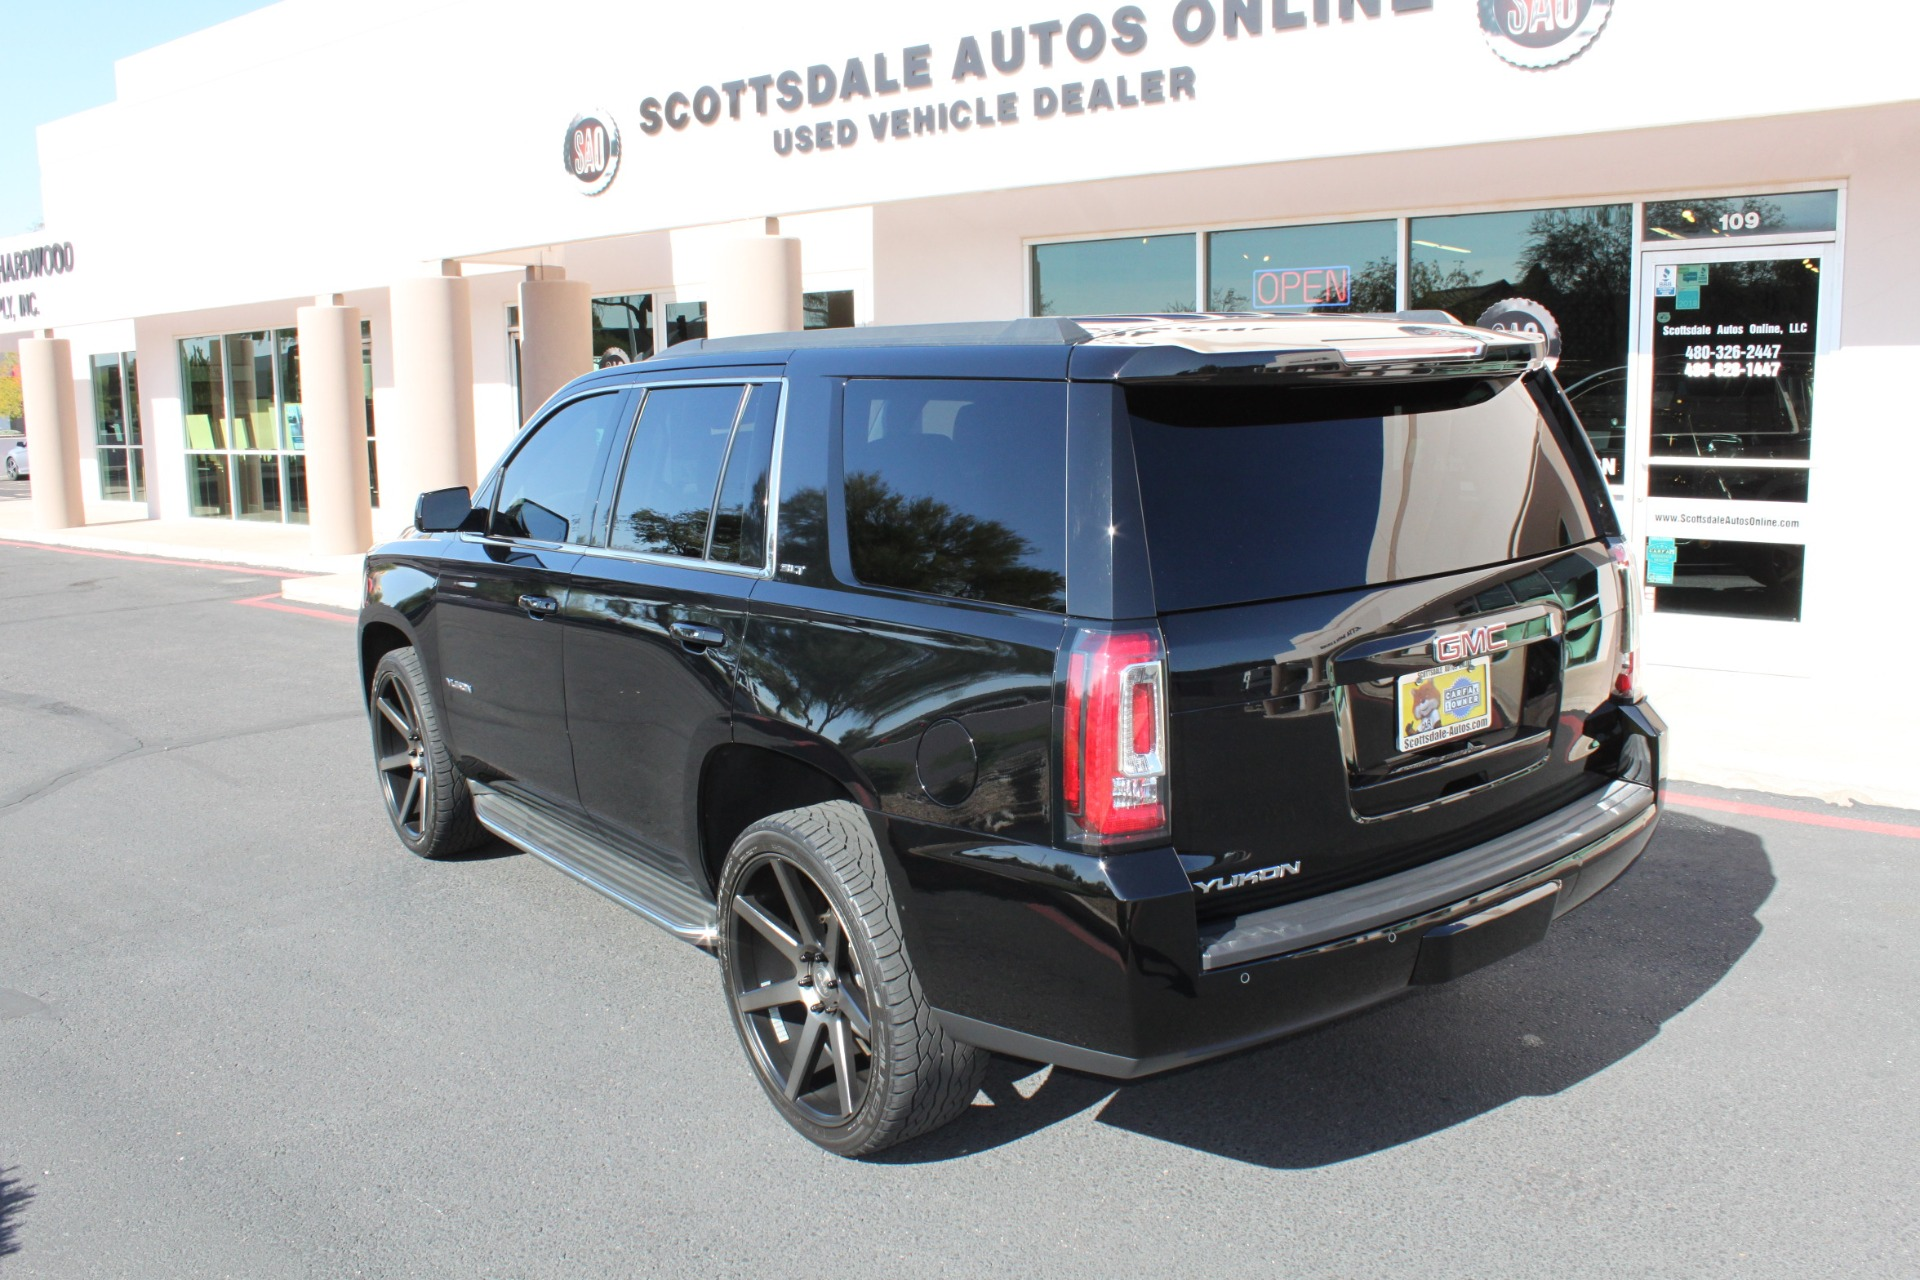 Used-2015-GMC-Yukon-SLT-Dodge